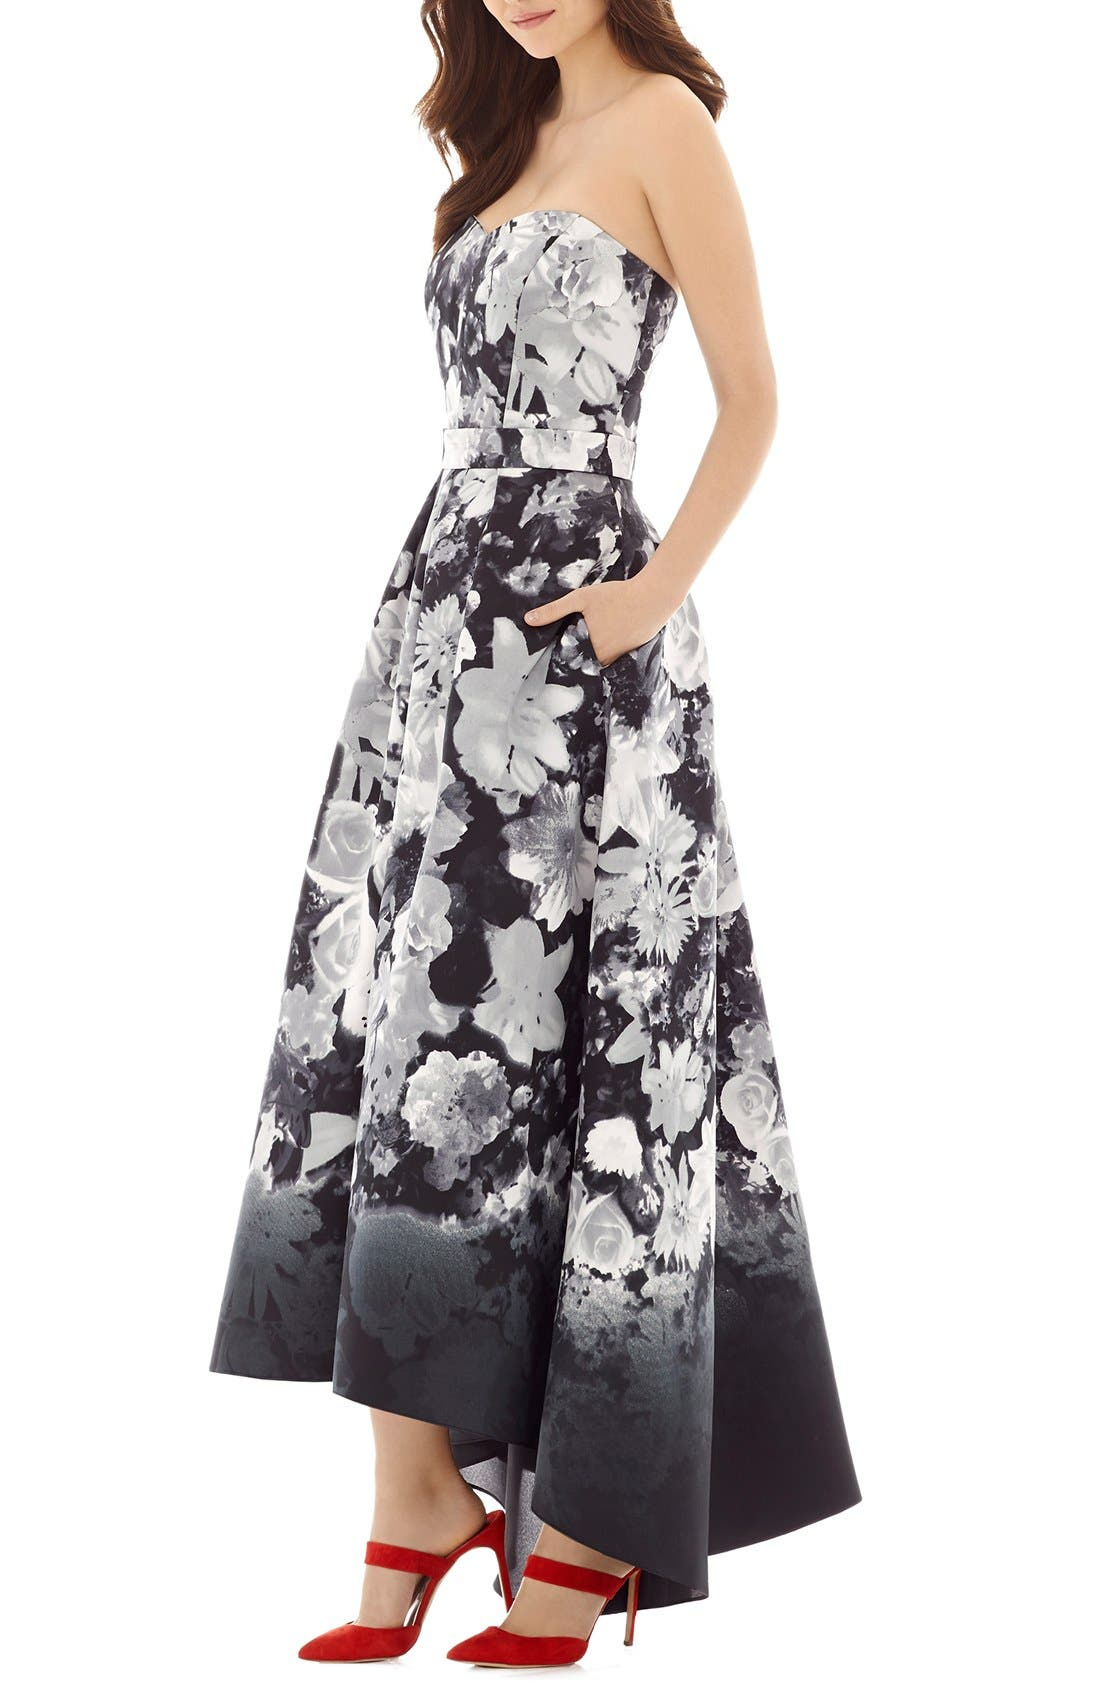 ALFRED SUNG, Floral Print Strapless Sateen High/Low Dress, Main thumbnail 1, color, BOHO